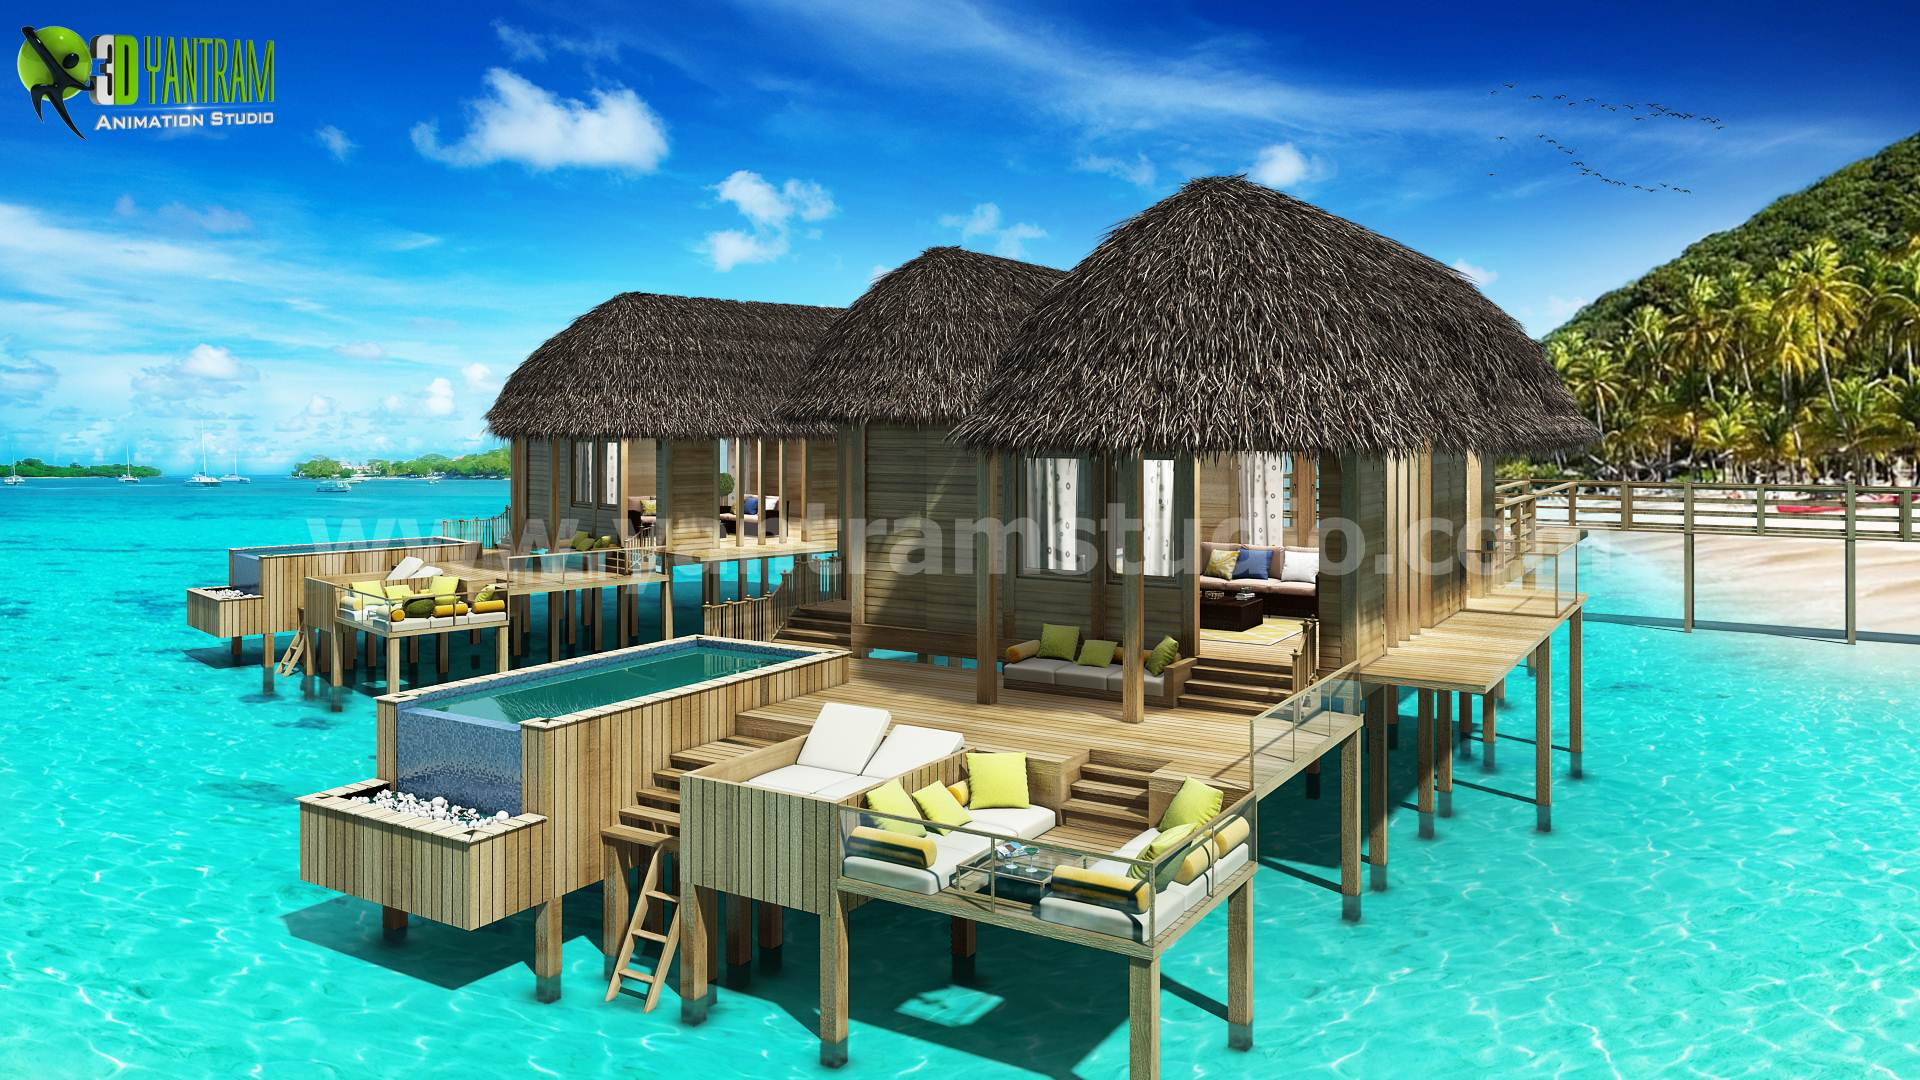 3D Conceptual Water House Design Ideas by yantram architectural rendering service Virginia - Fully conceptual Sea Cottages view rendering at beach side 3D Yantram Architectural Visualization Companies, It covers 3 cottages in perspective view with background of Designed palm trees is main beauty of the render and most important day lighting. by yantramstudio